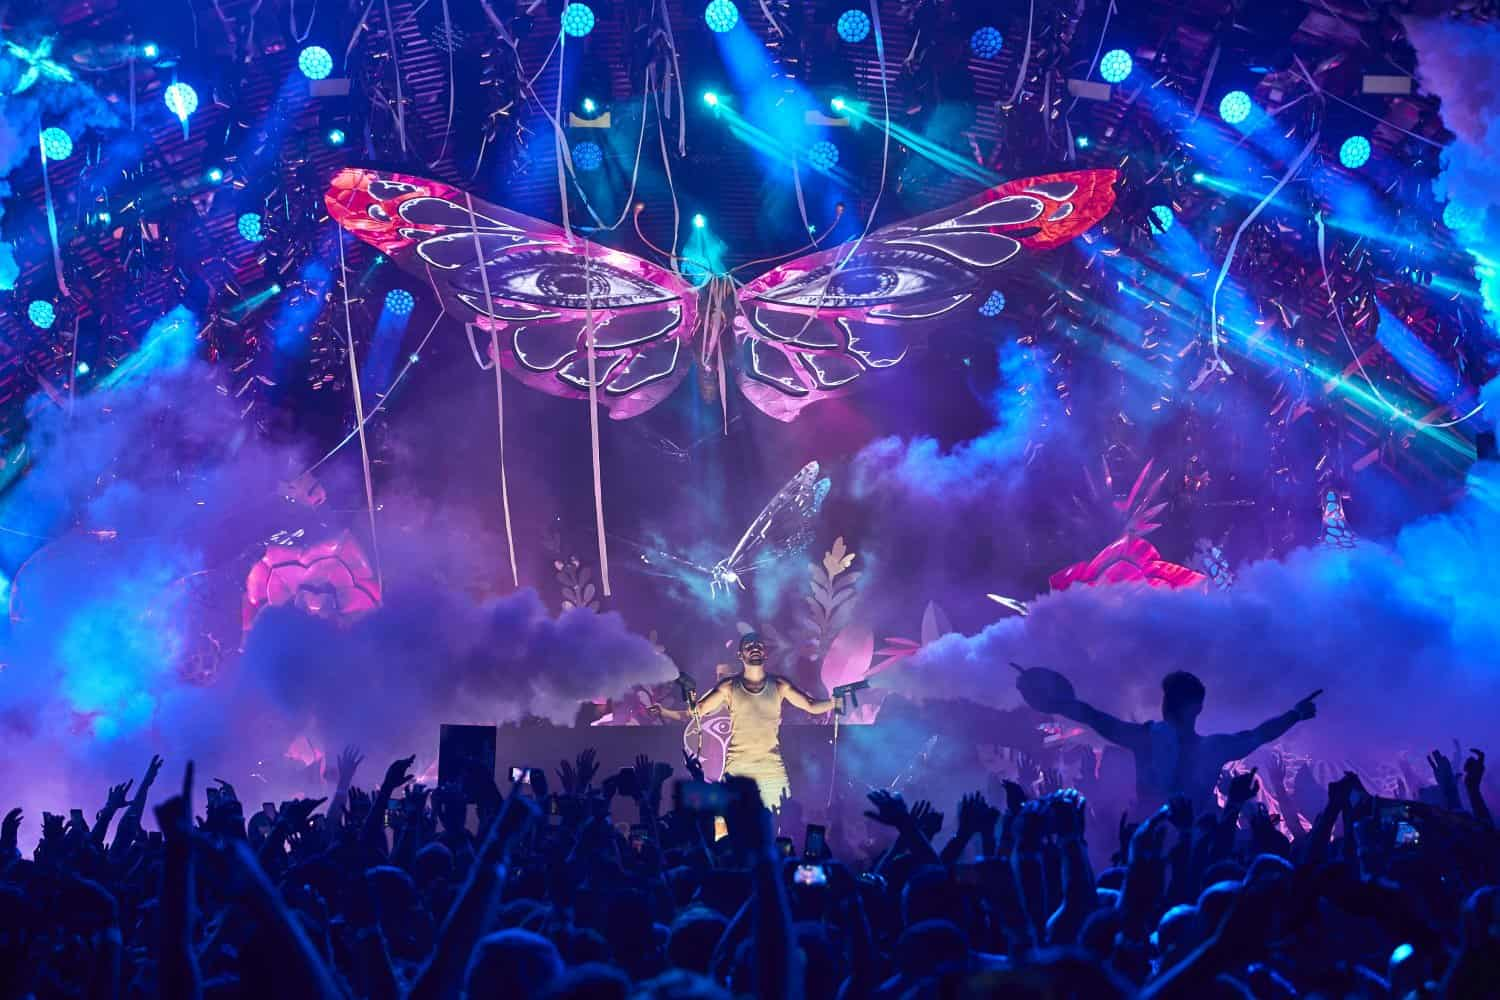 Tomorrowland presents Dimitri Vegas & Like Mike Ibiza 2019 - Tickets, Events and Lineup 1